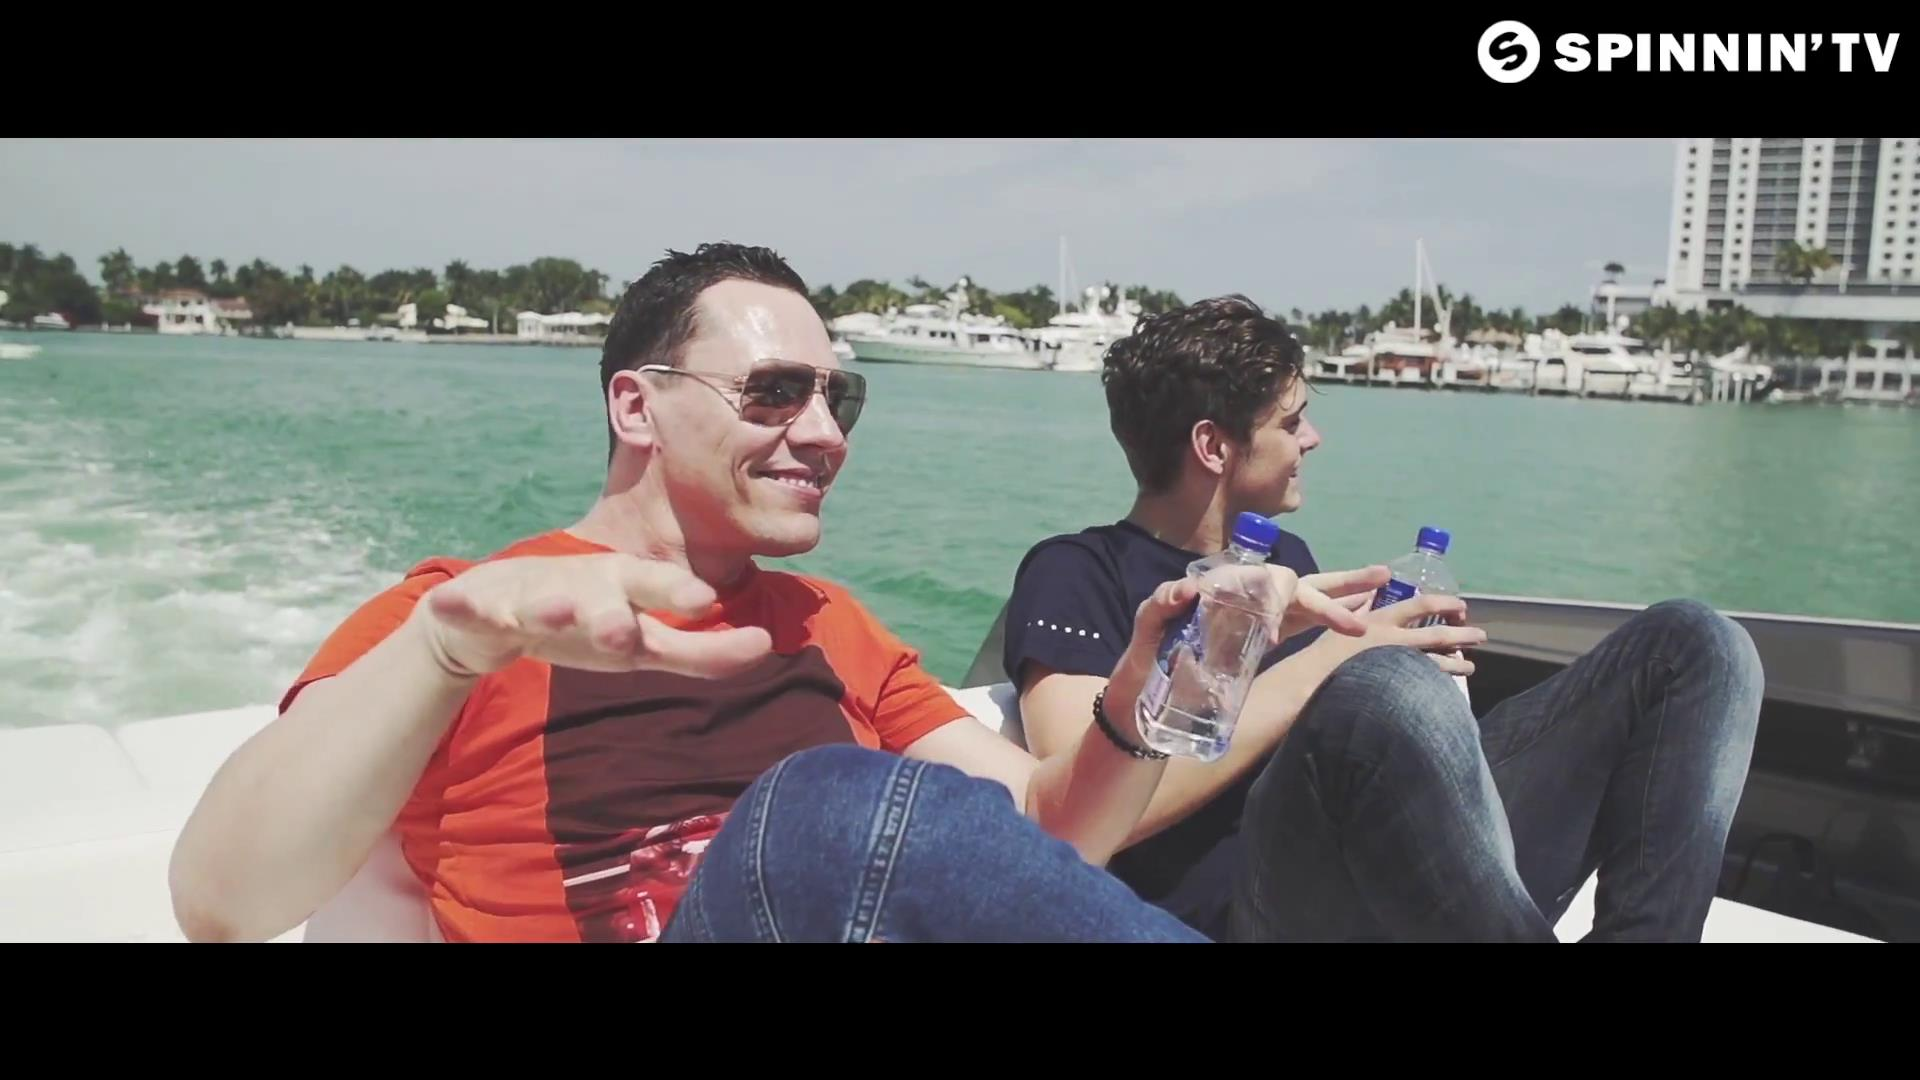 Martin Garrix & Tiësto The Only Way Is Up